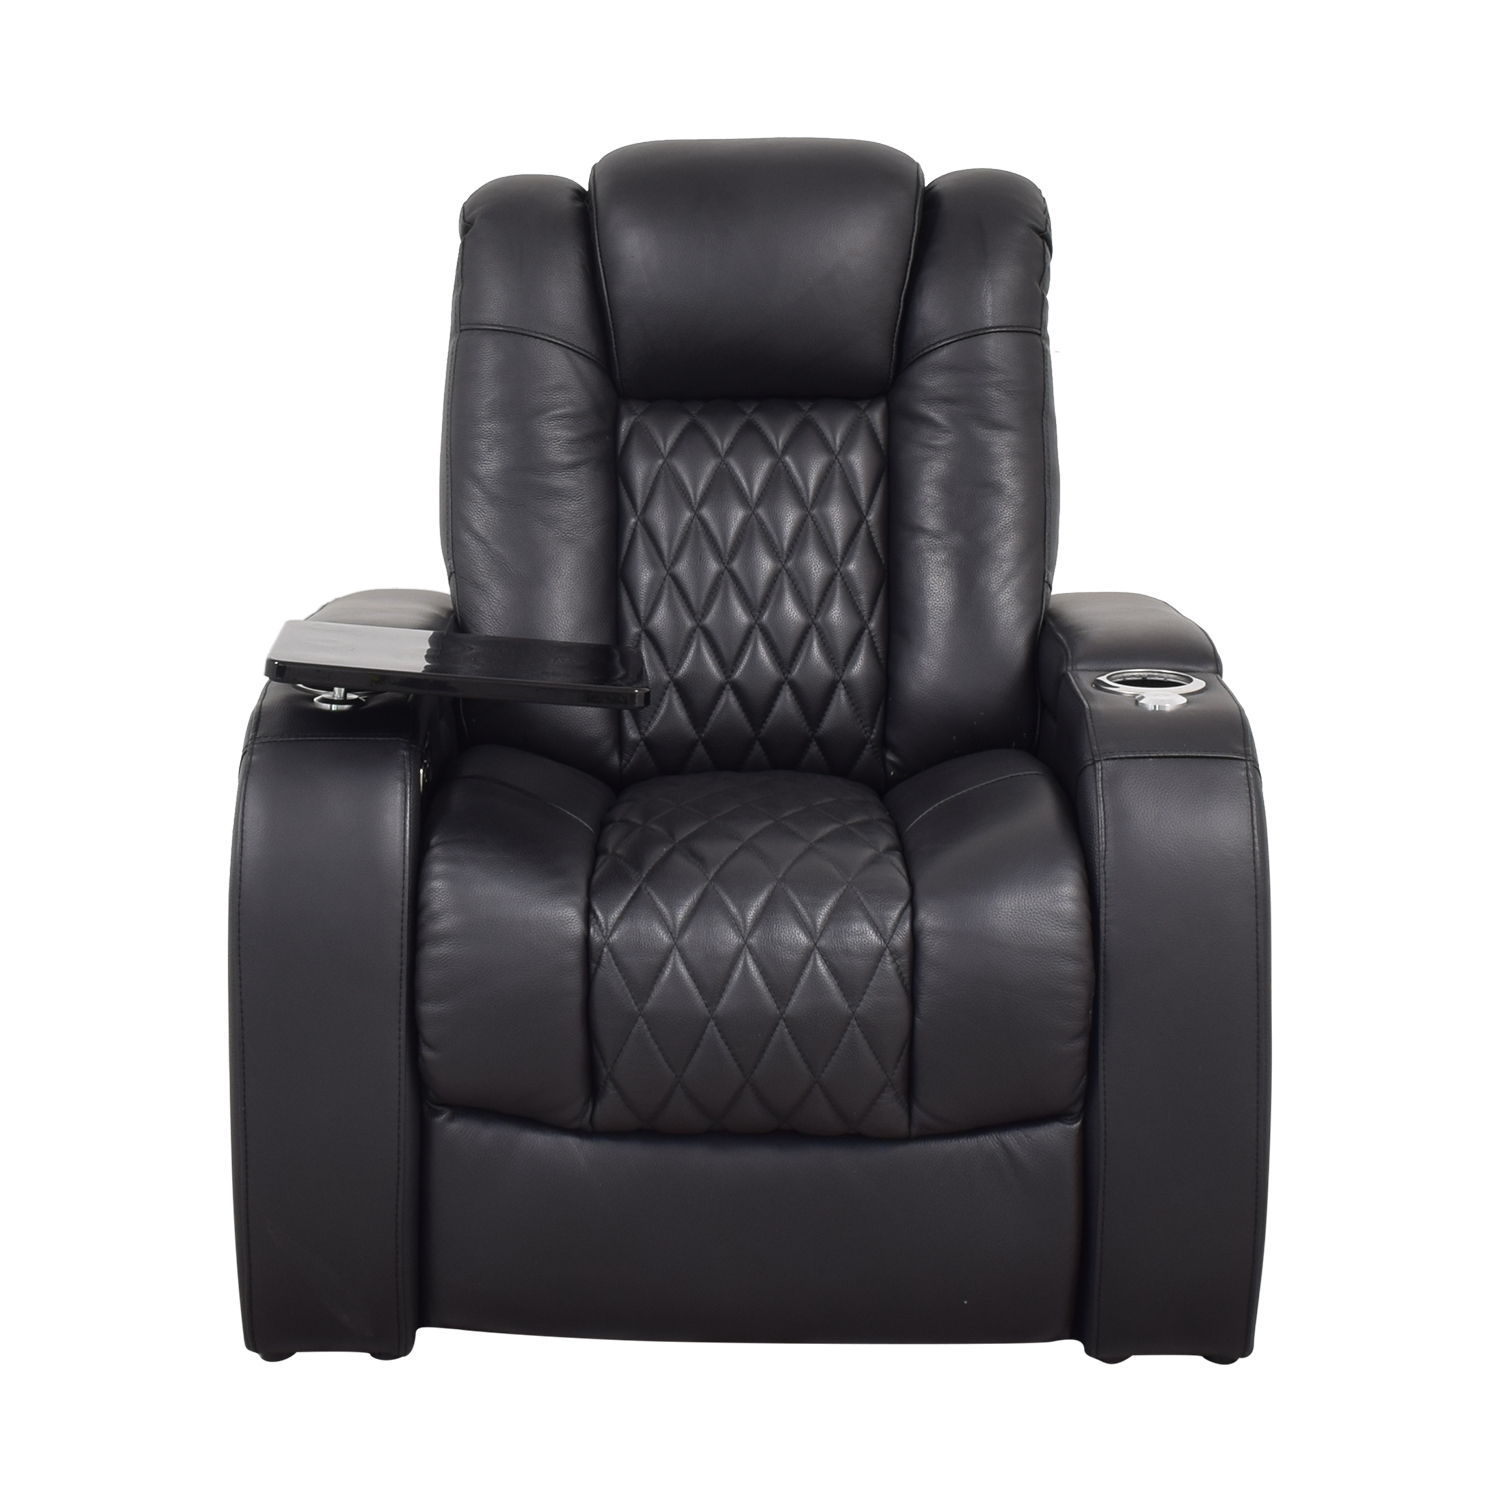 Seatcraft Diamante Home Theater Seating Leather Power Recliner sale